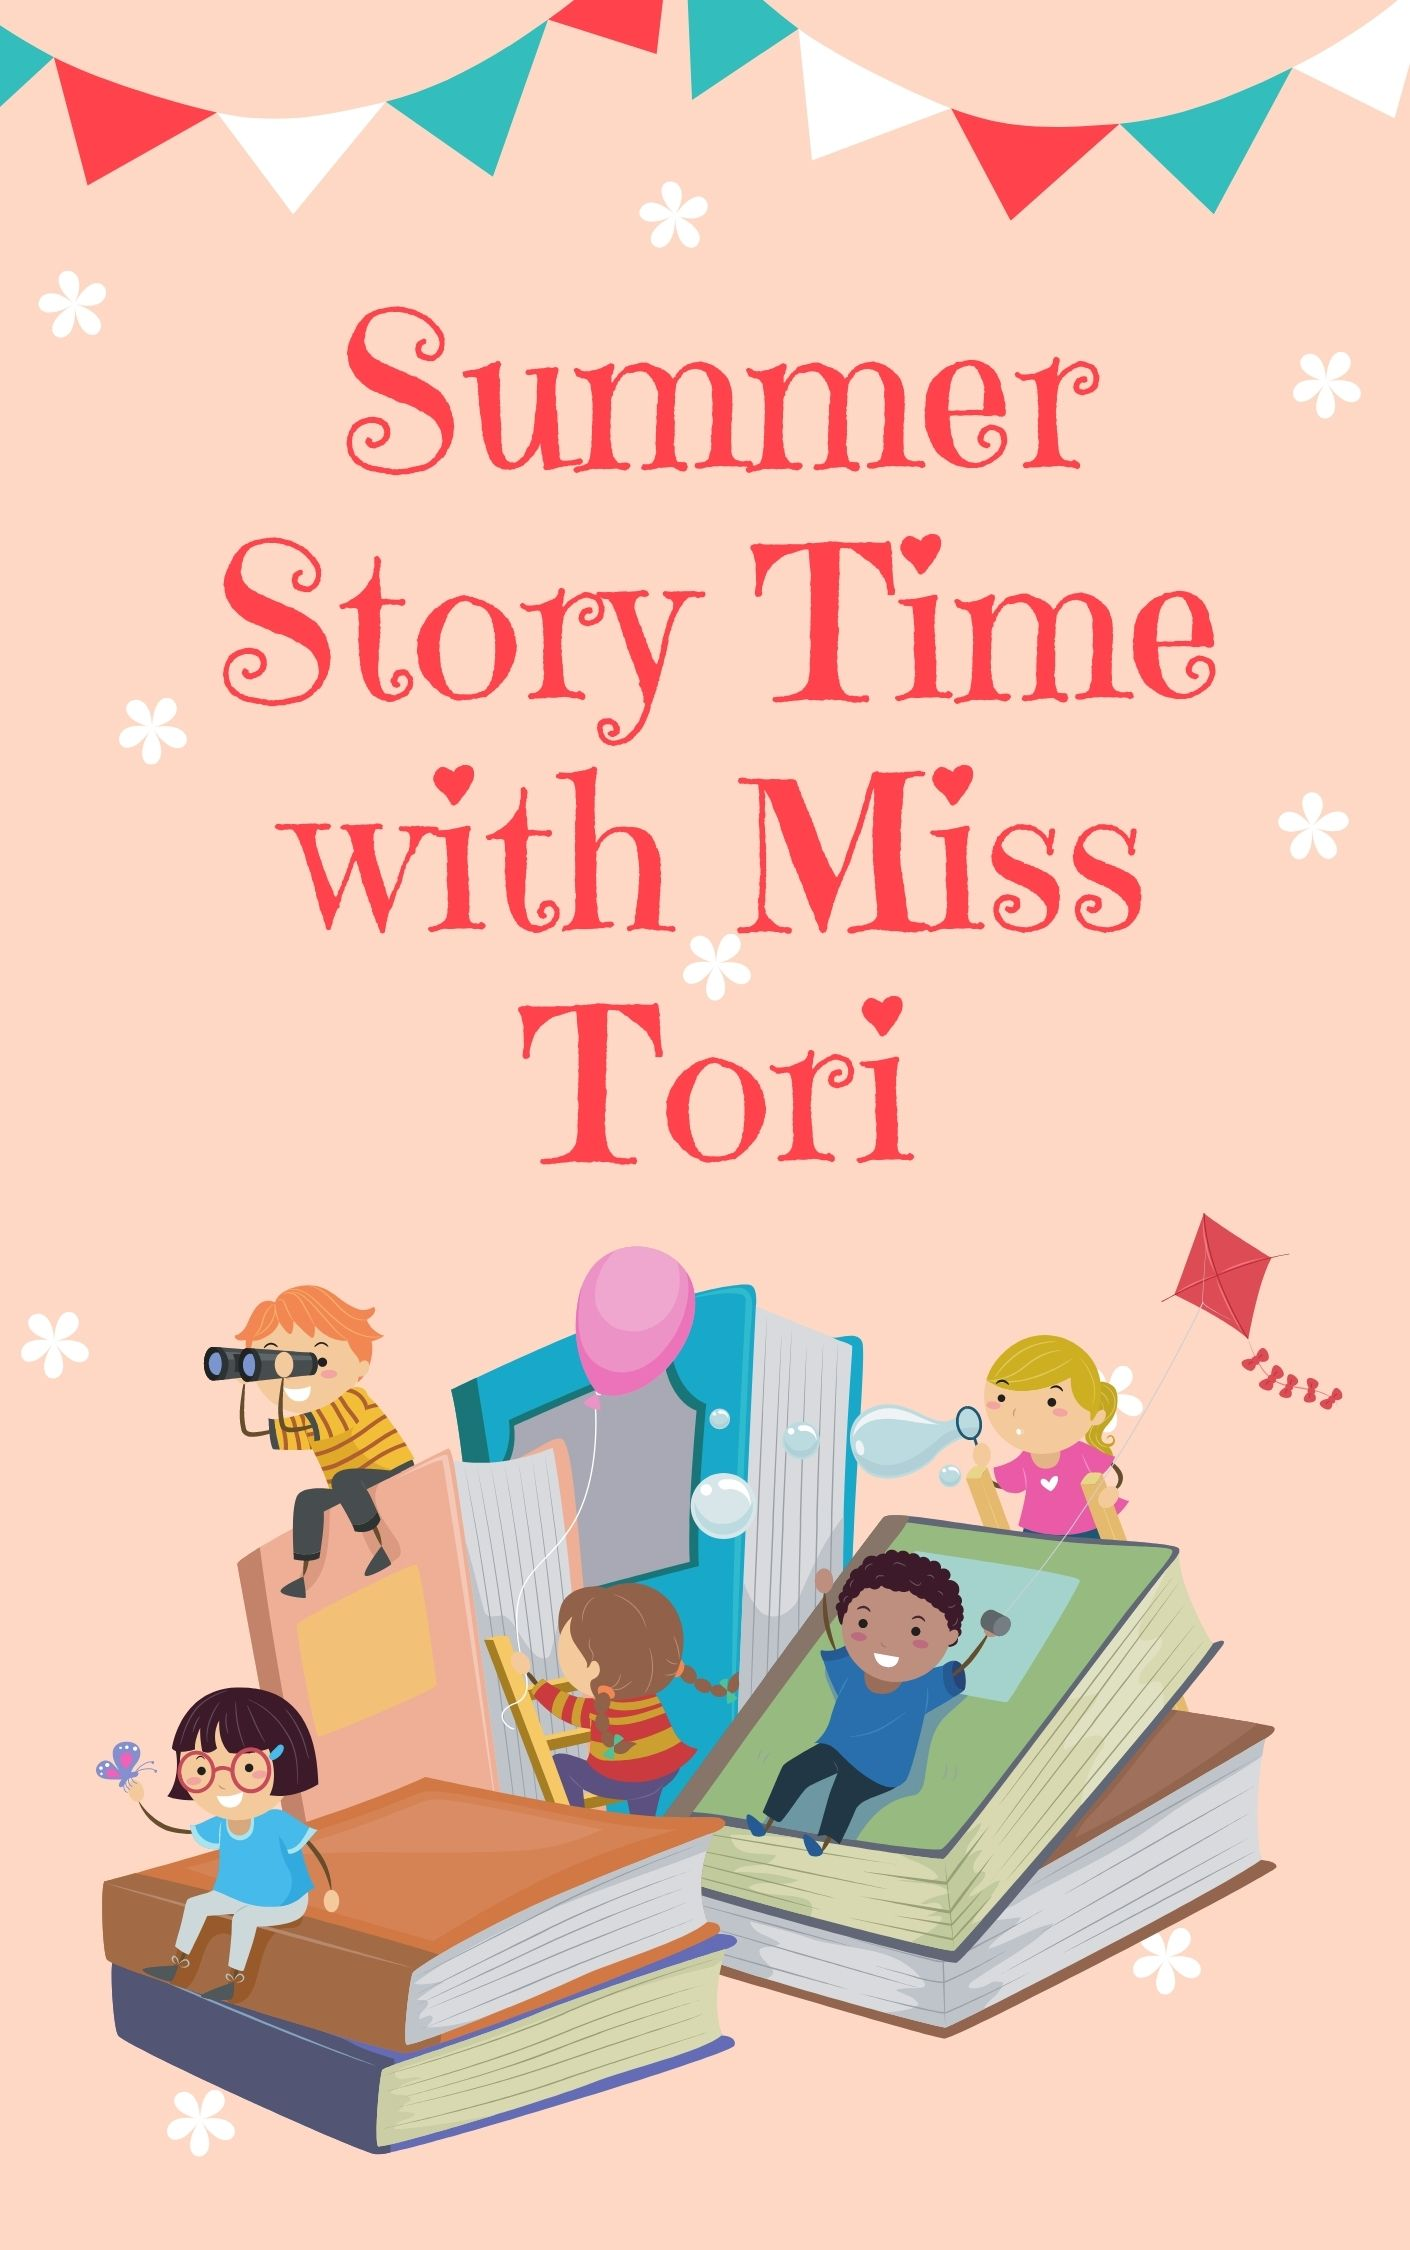 Summer Story Time with Miss Tori